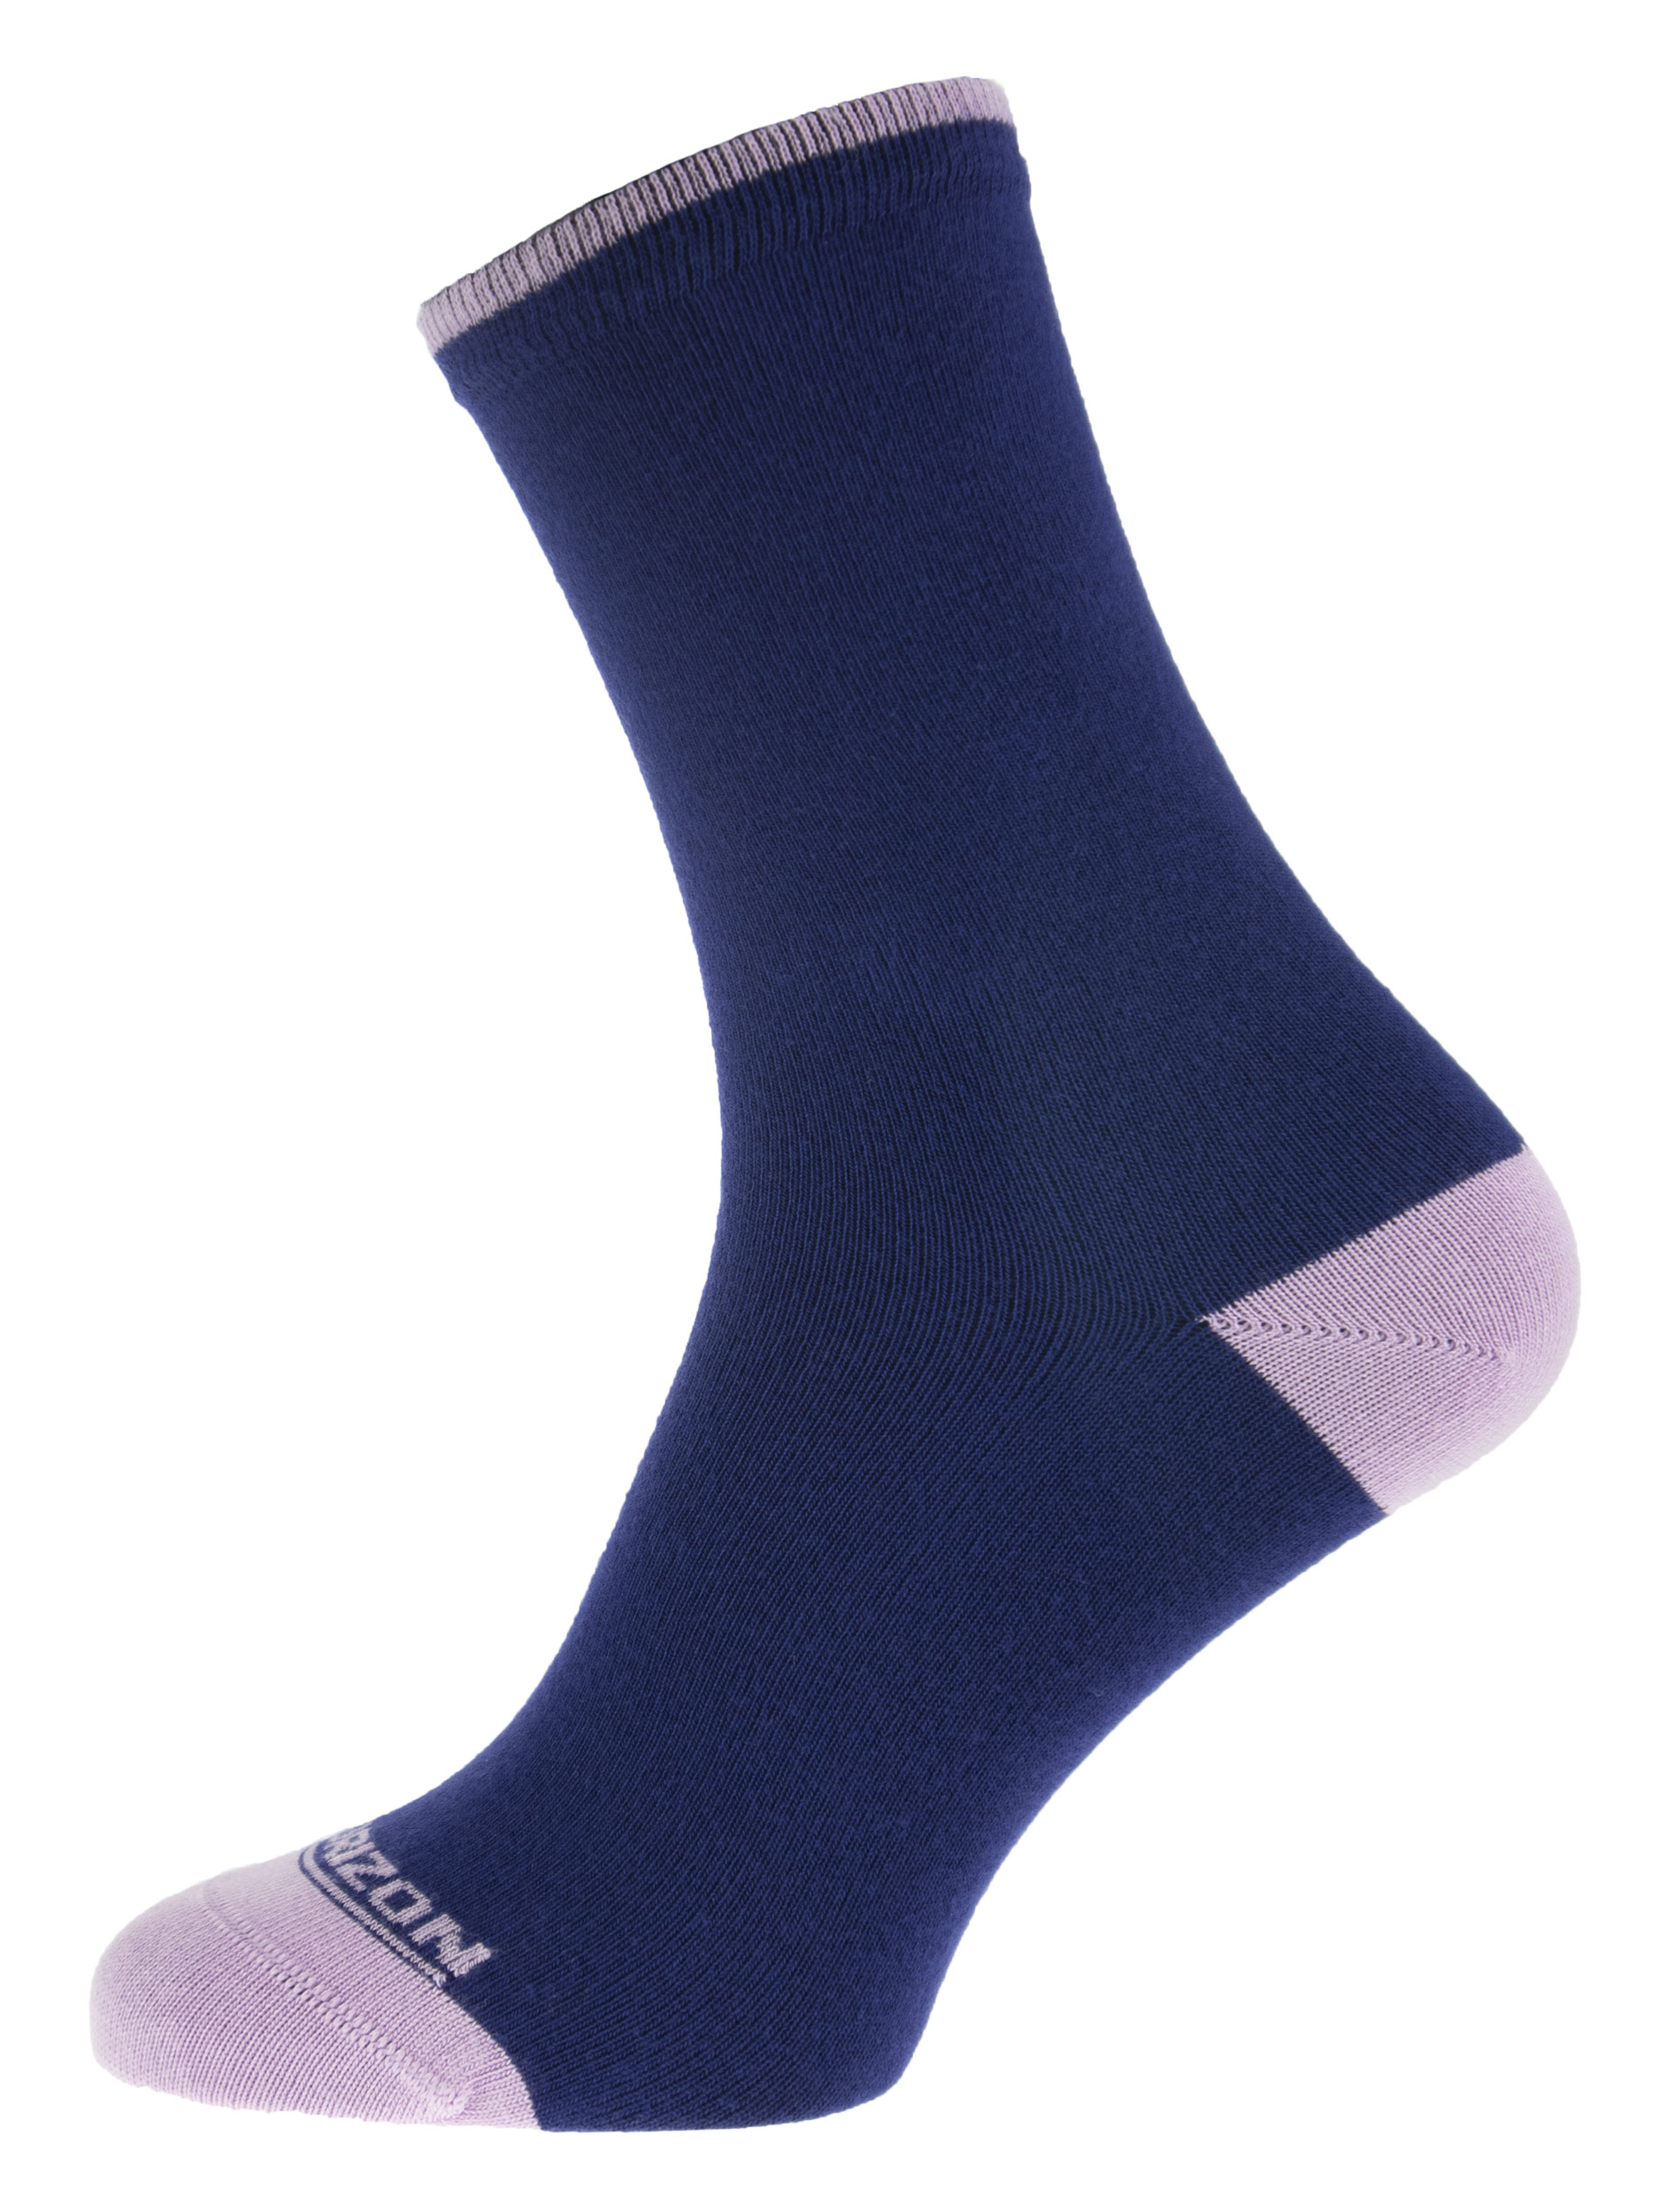 Leisure Bamboo Womens Plain Socks Navy Pink